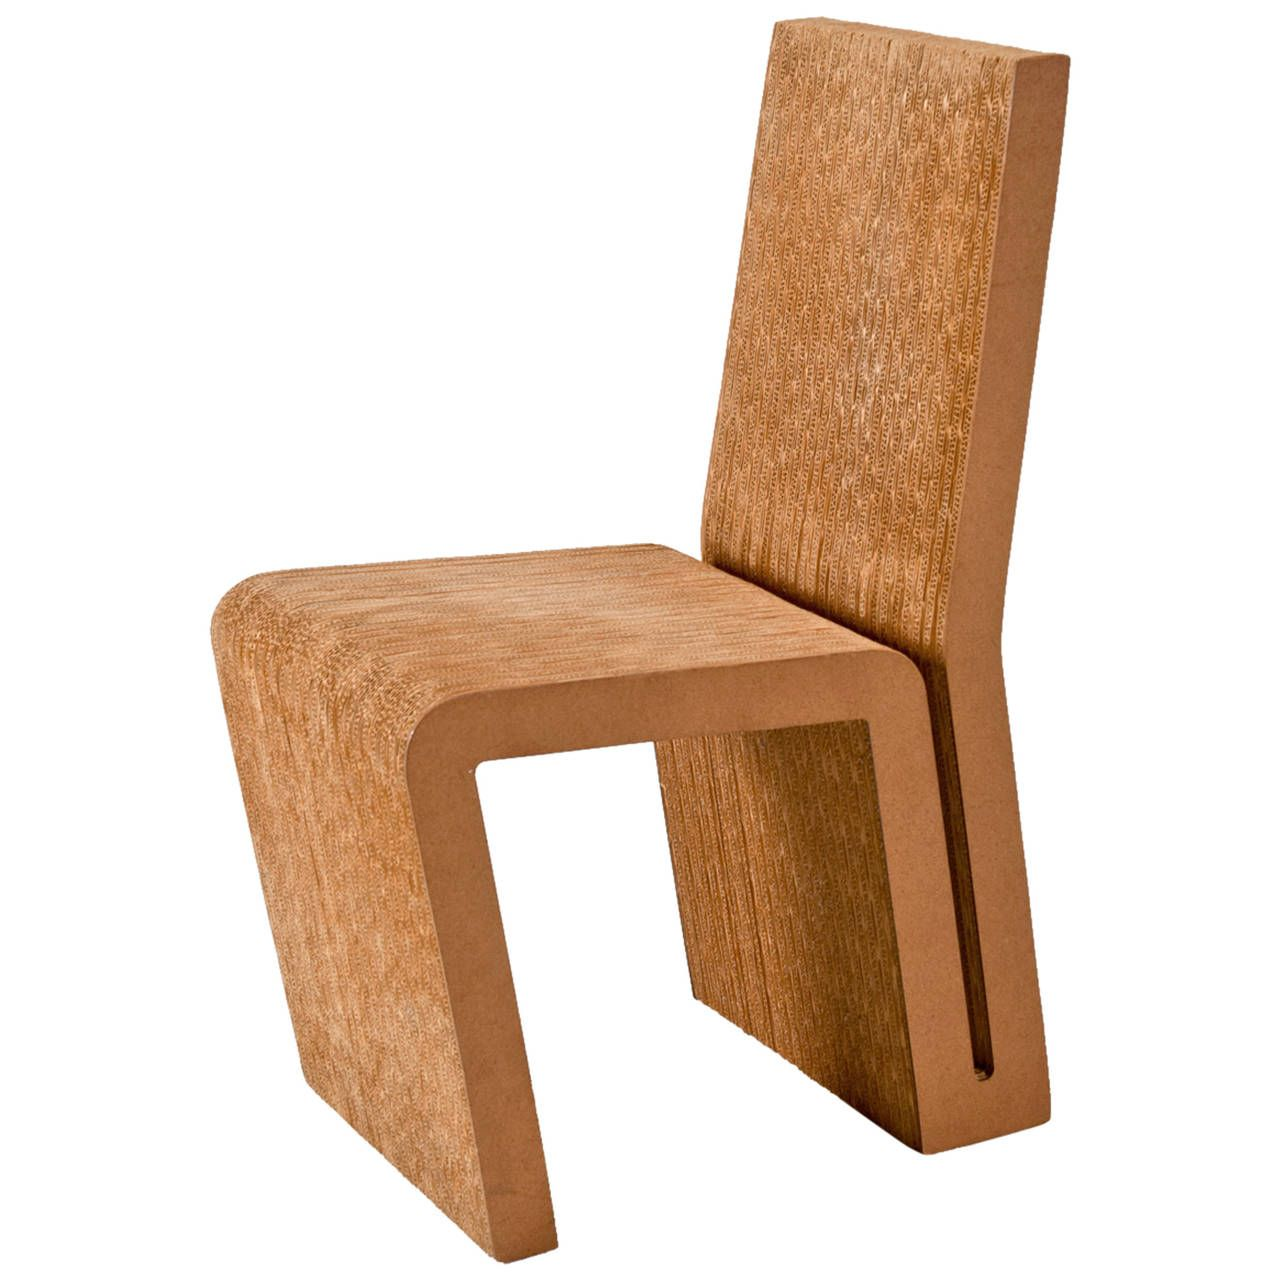 Cardboard furniture techniques how to achieve strength growing up - Frank Gehry Side Chair In Cardboard For Vitra Edition